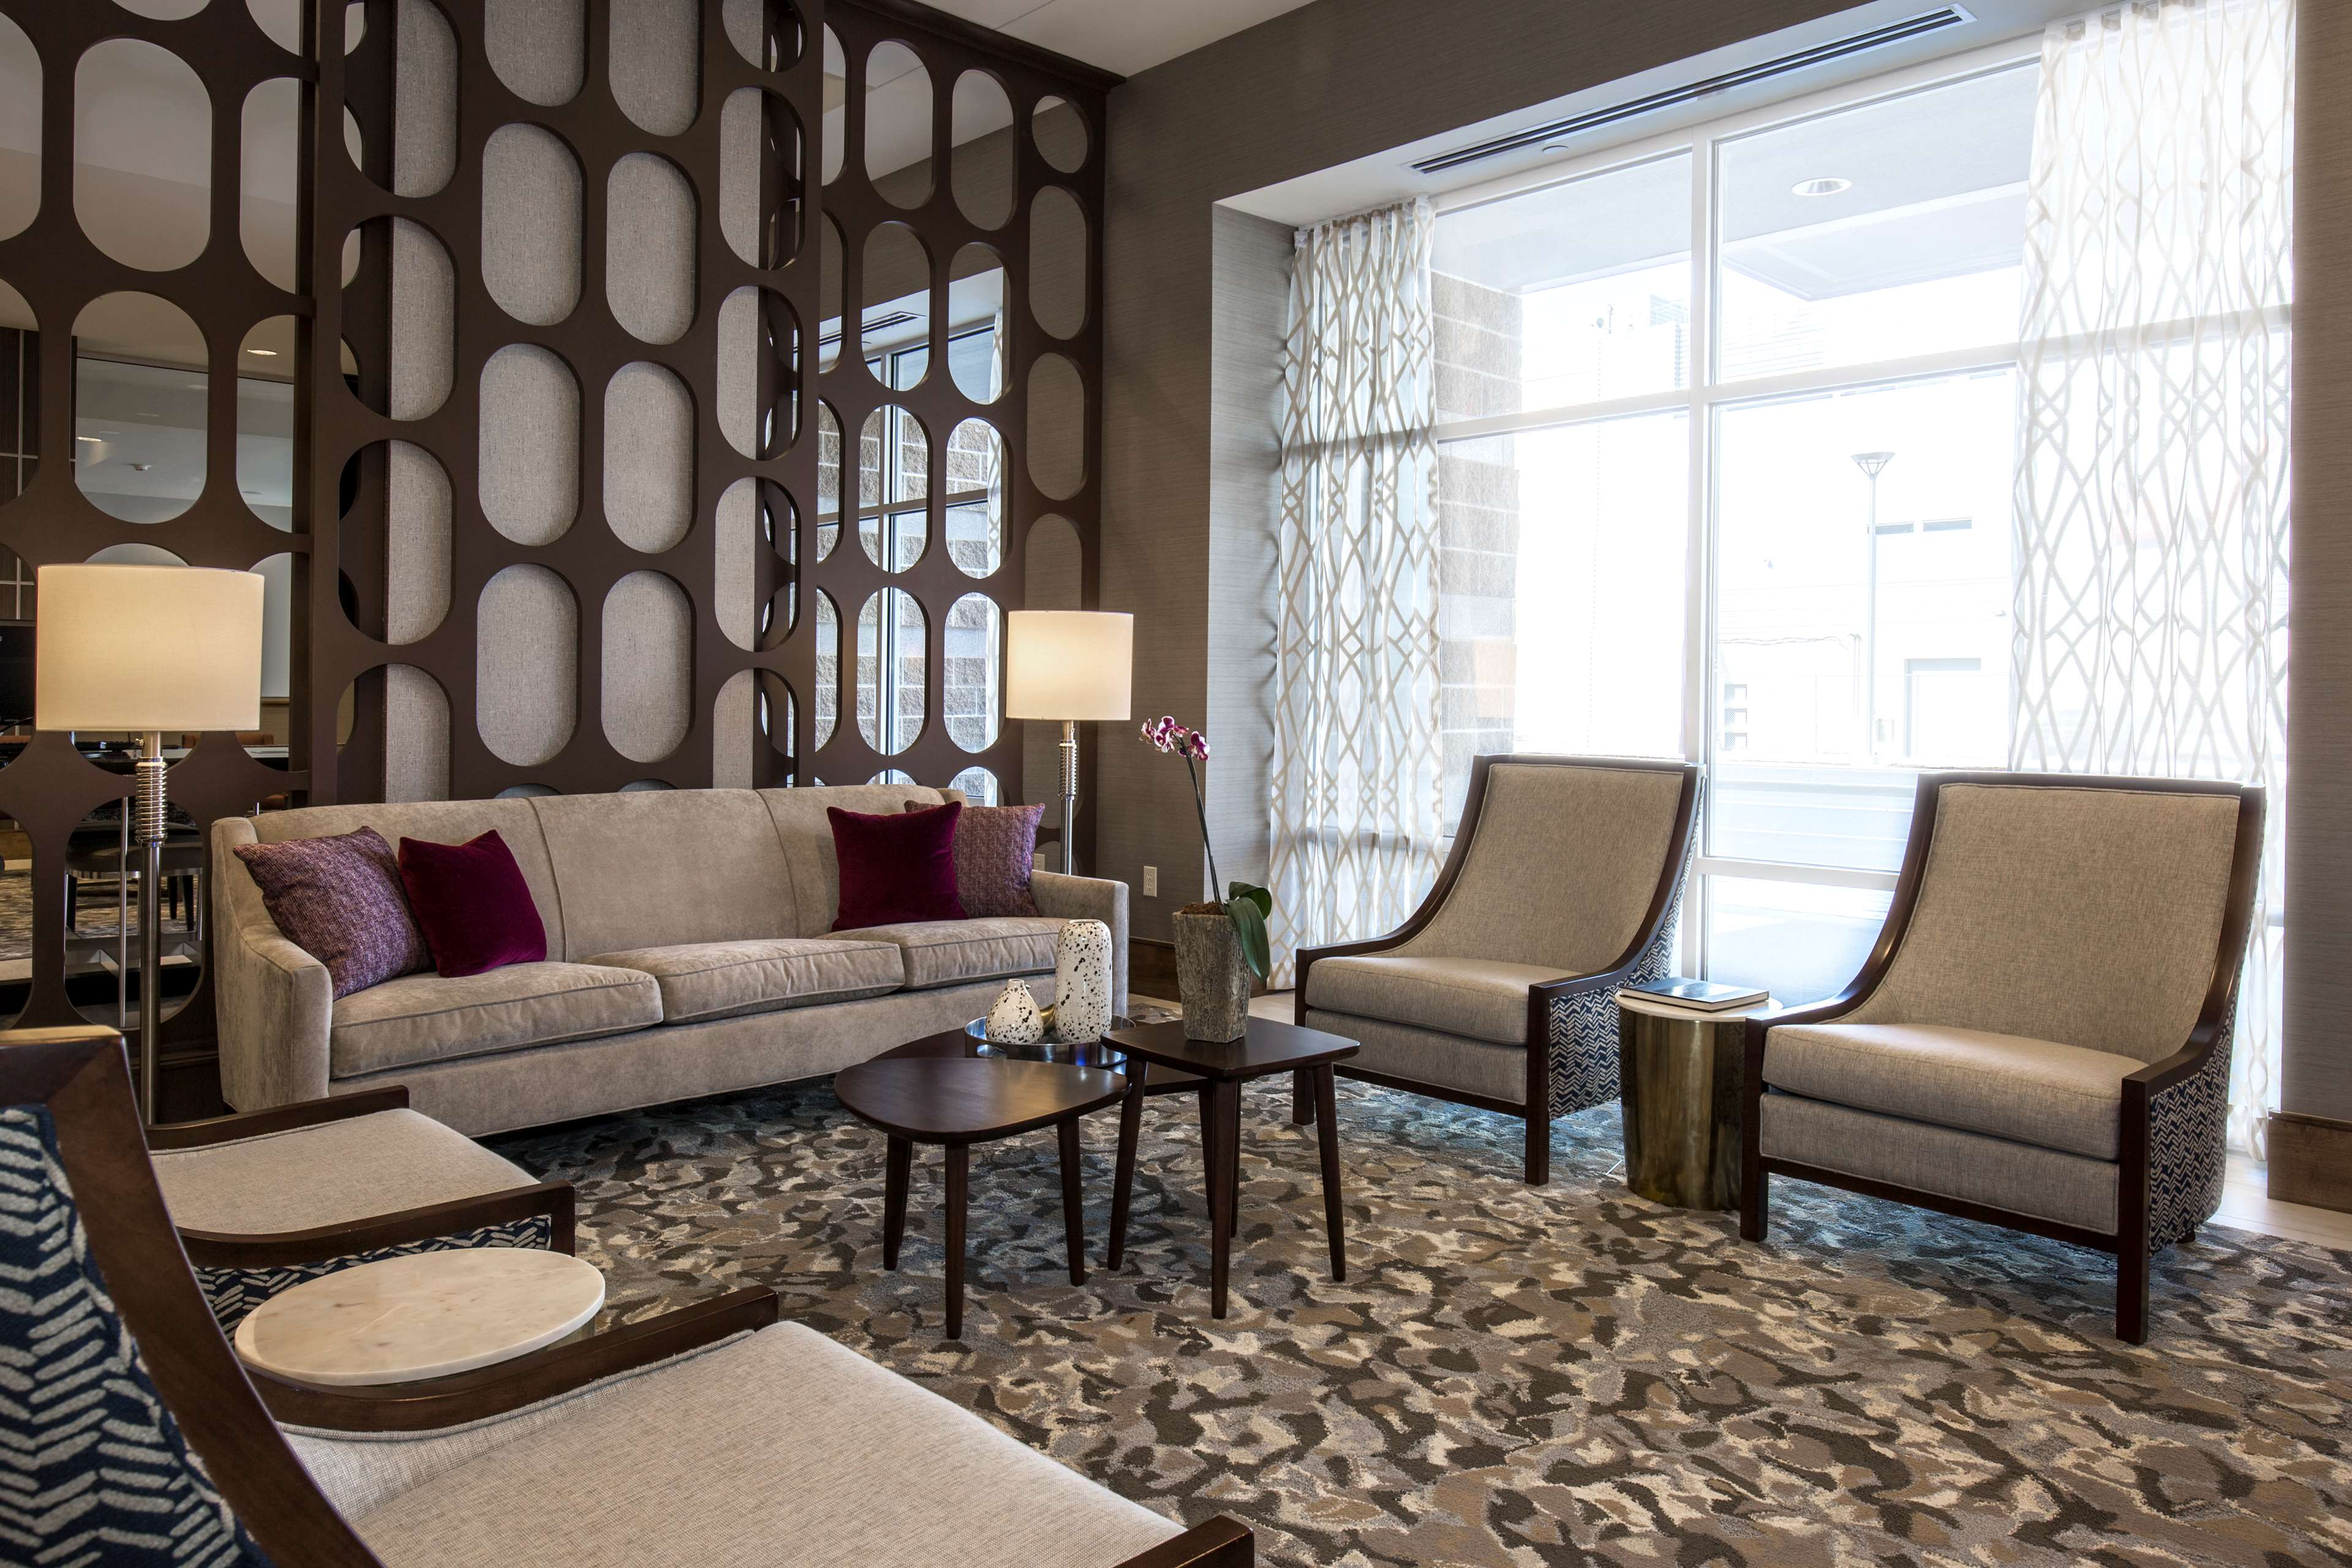 DoubleTree by Hilton Evansville image 7